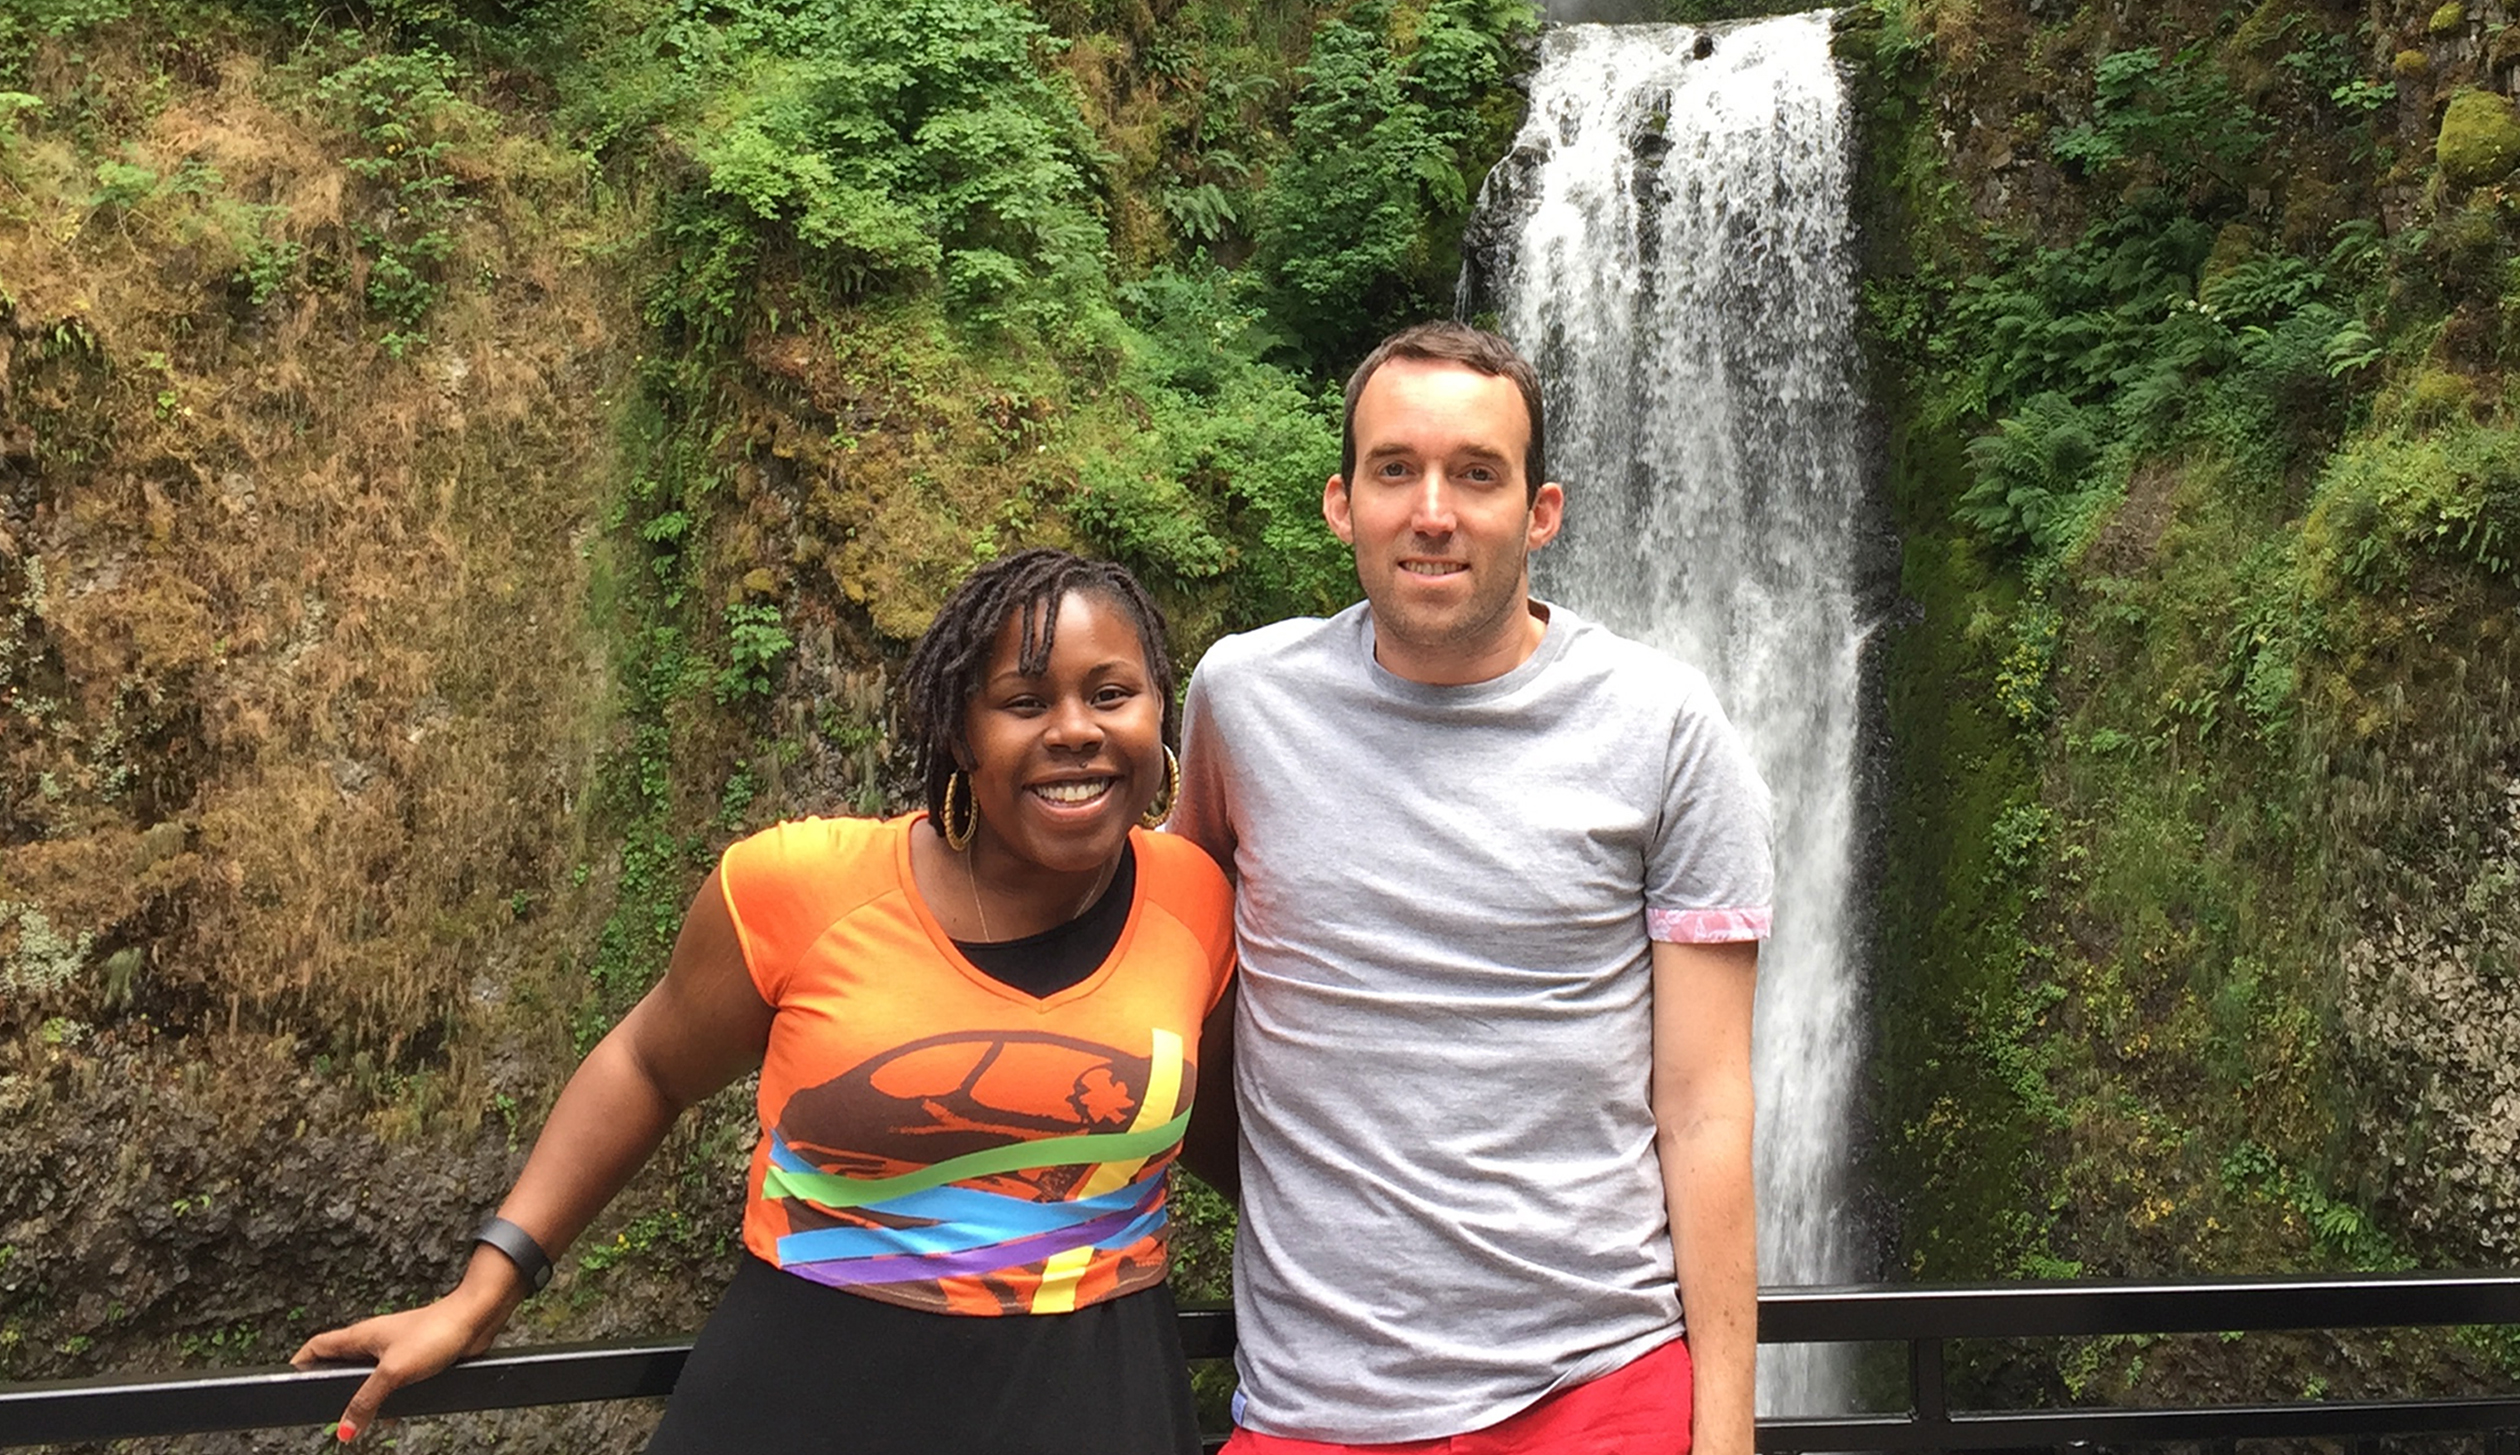 Fortune reporter John Kell (right) and his friend Malika while on their Portland, Oregon trip.